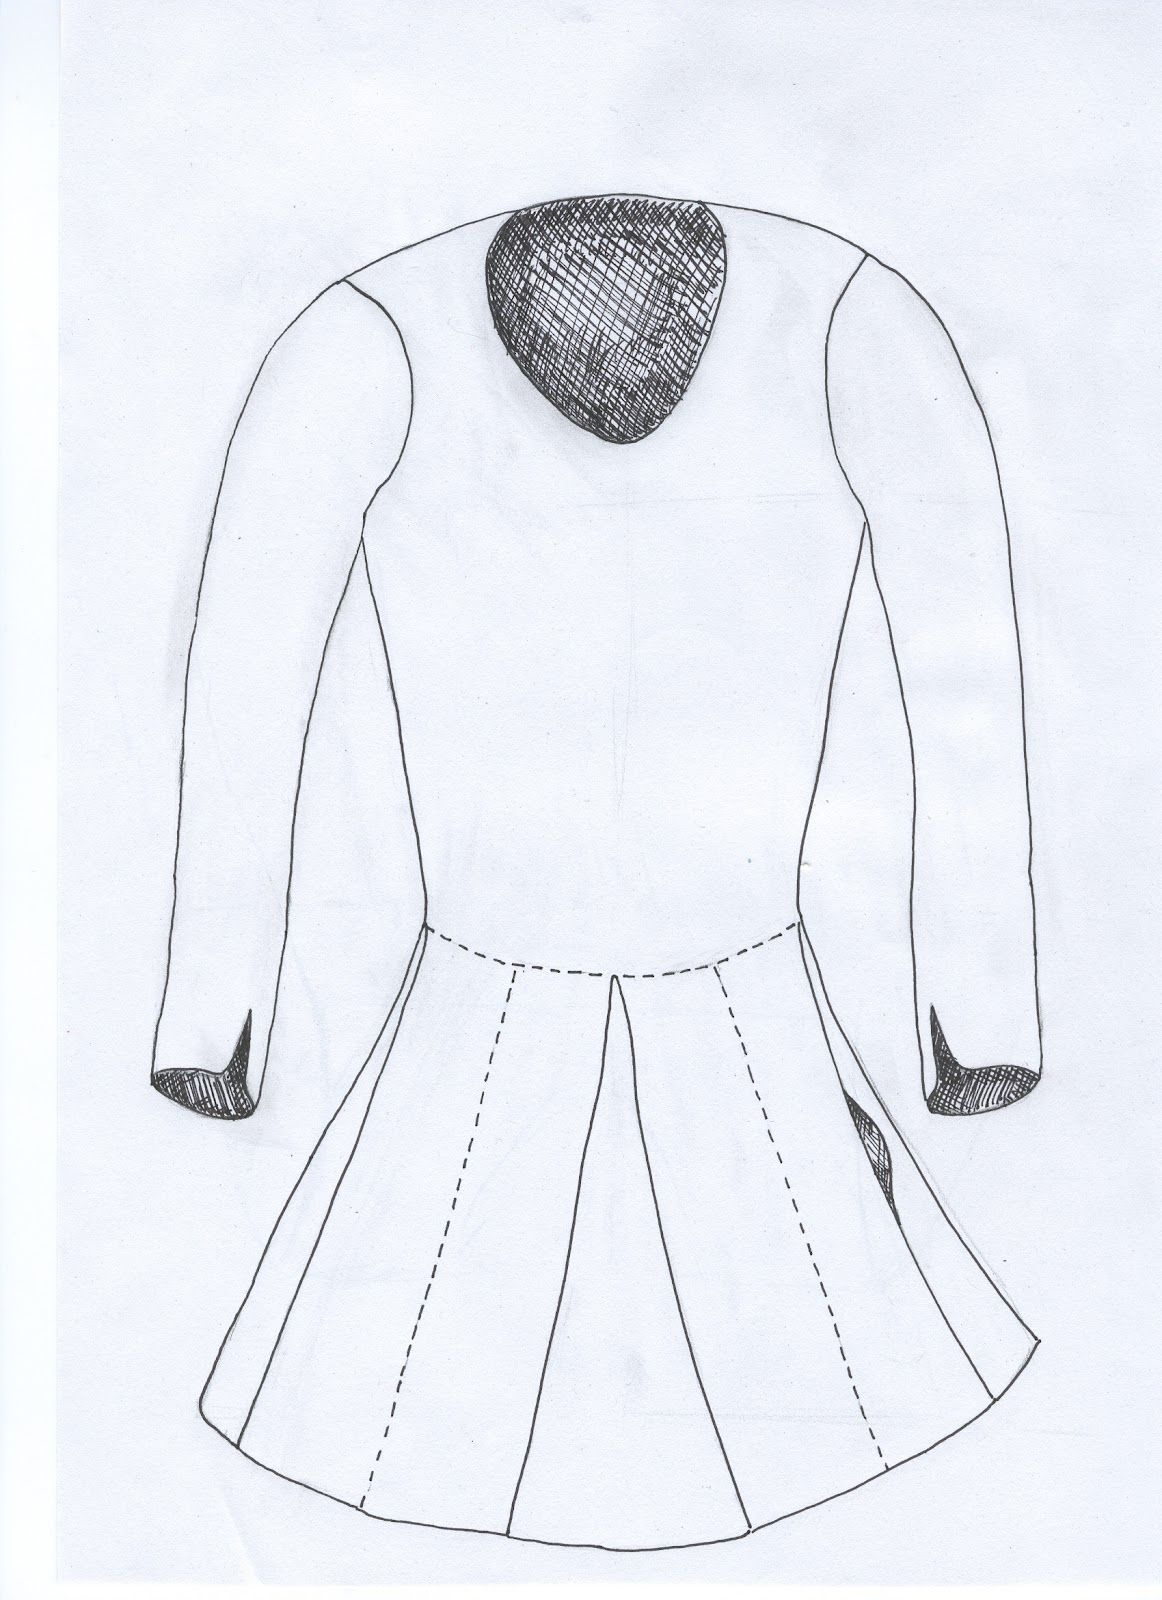 Reconstruction of a tunic from Haithabu based on info in